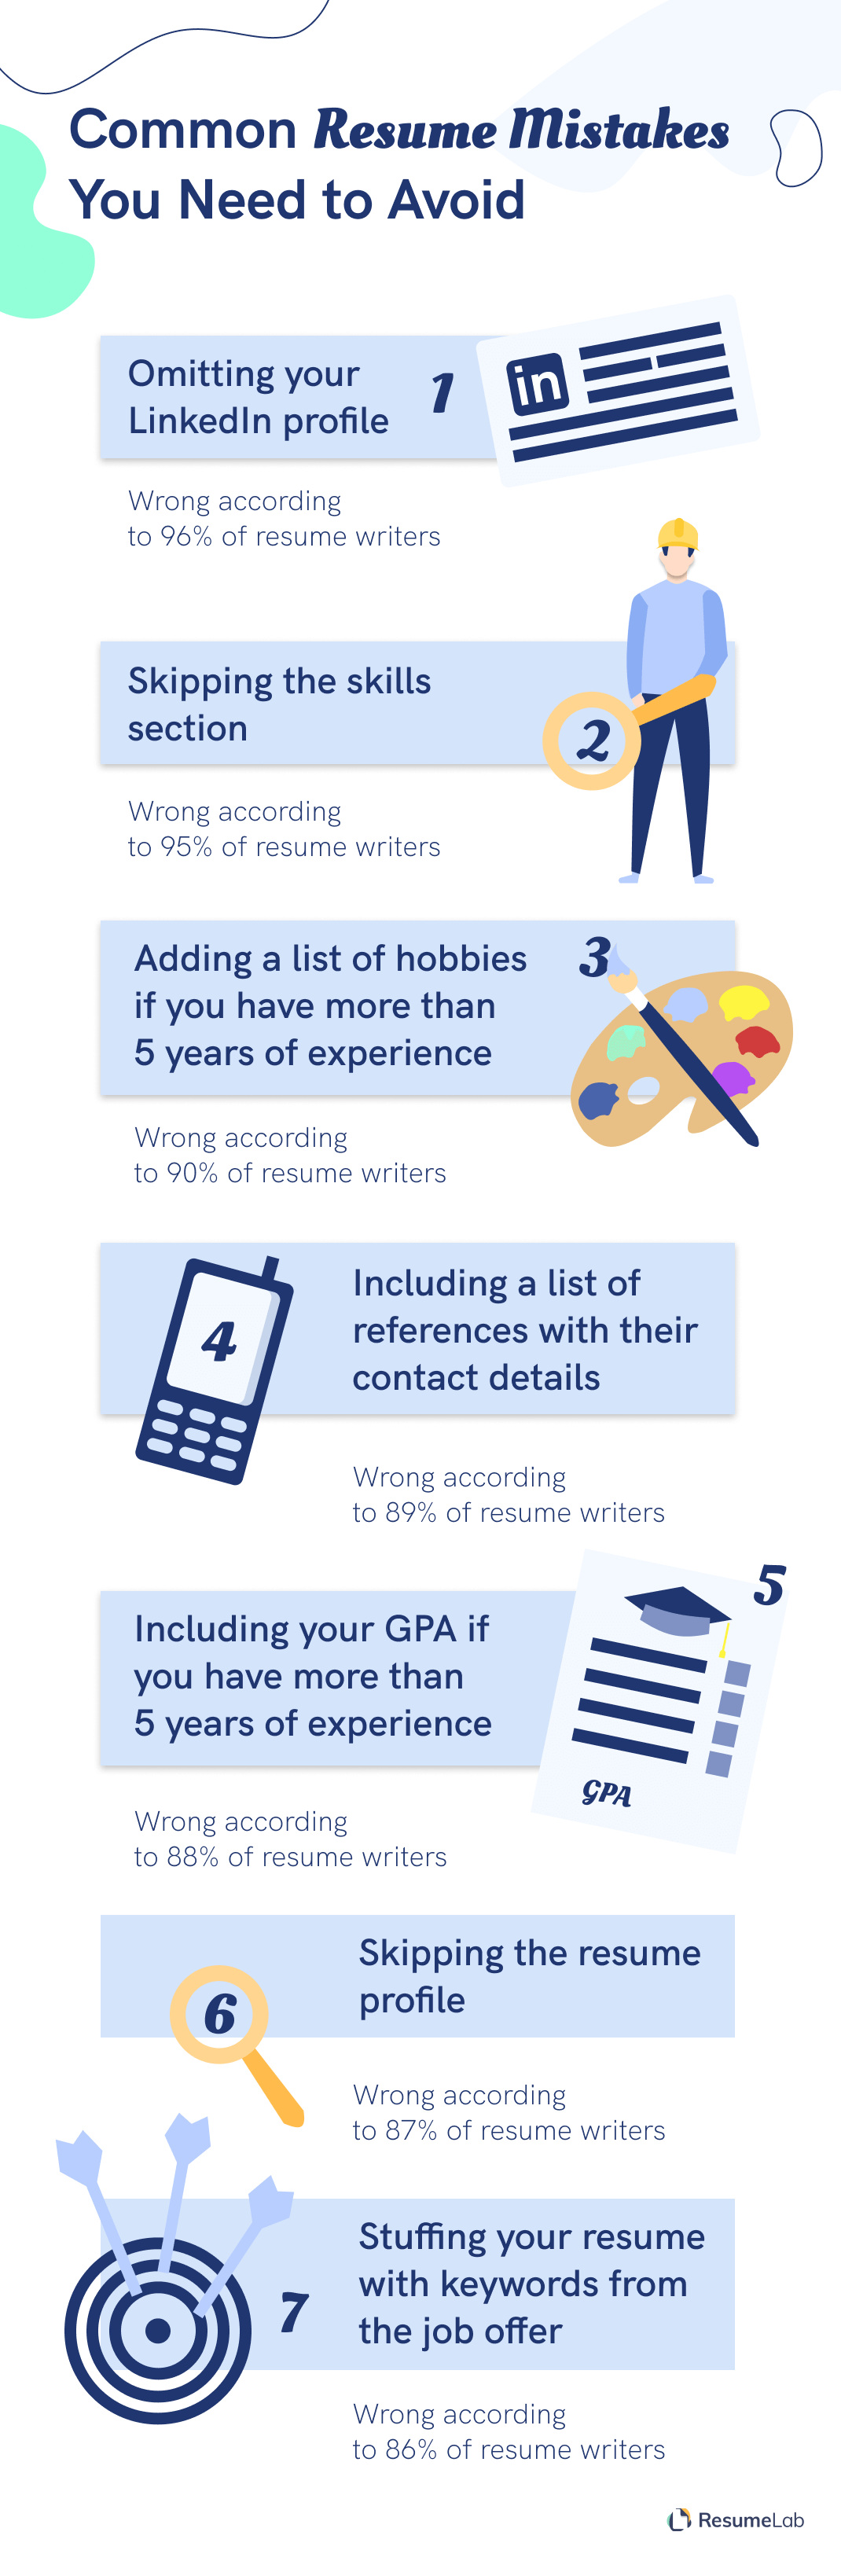 An infographic detailing the most common CV mistakes you should avoid.